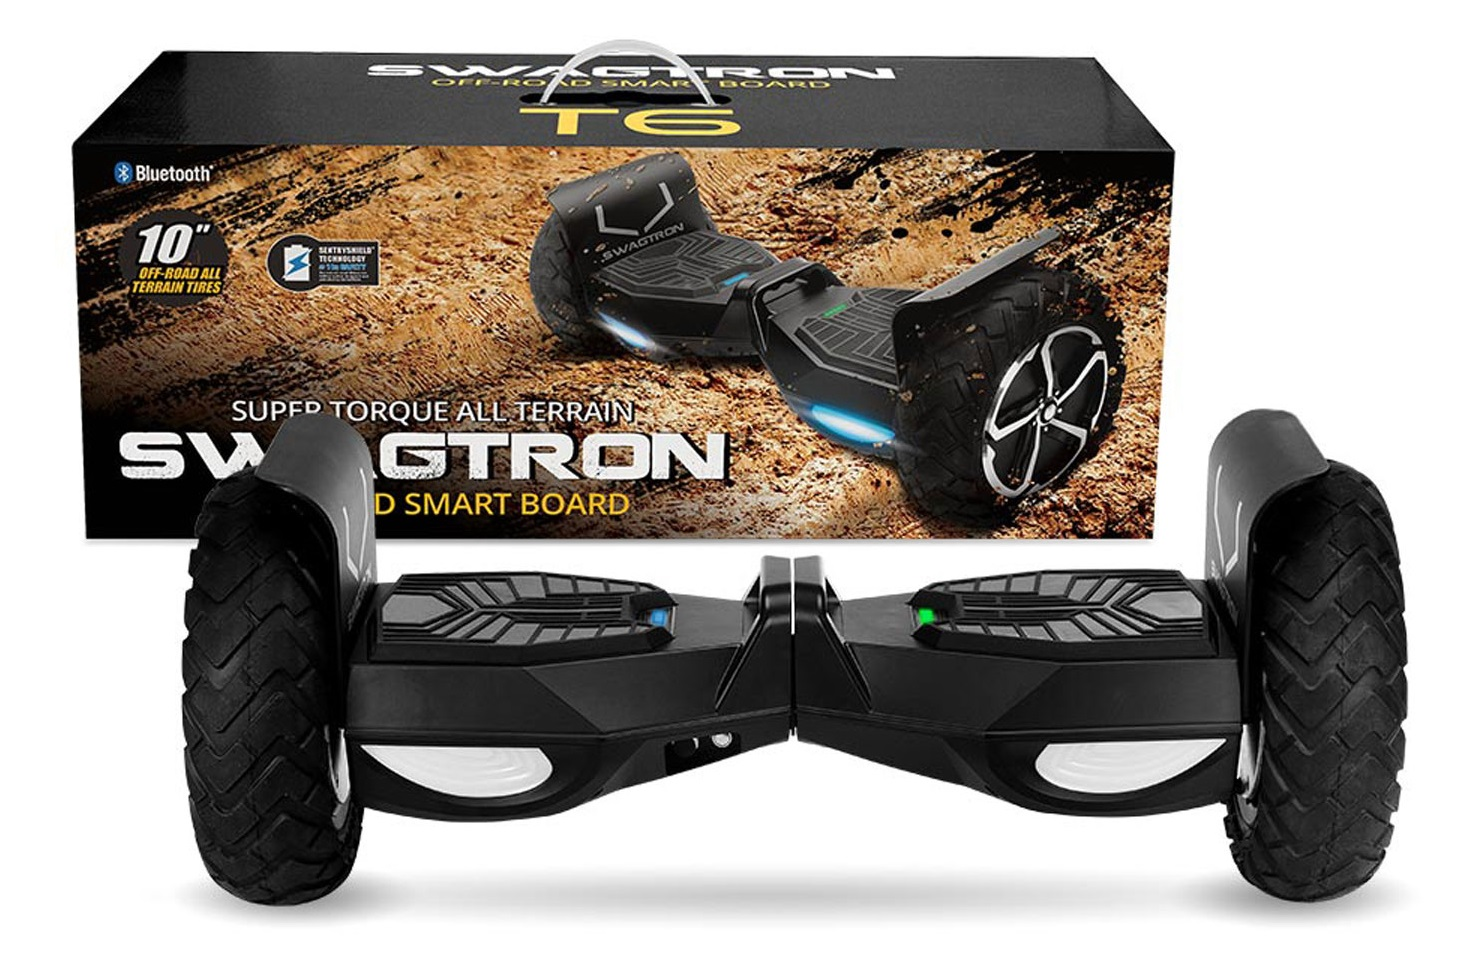 Swagtron all terrain Hoverboard